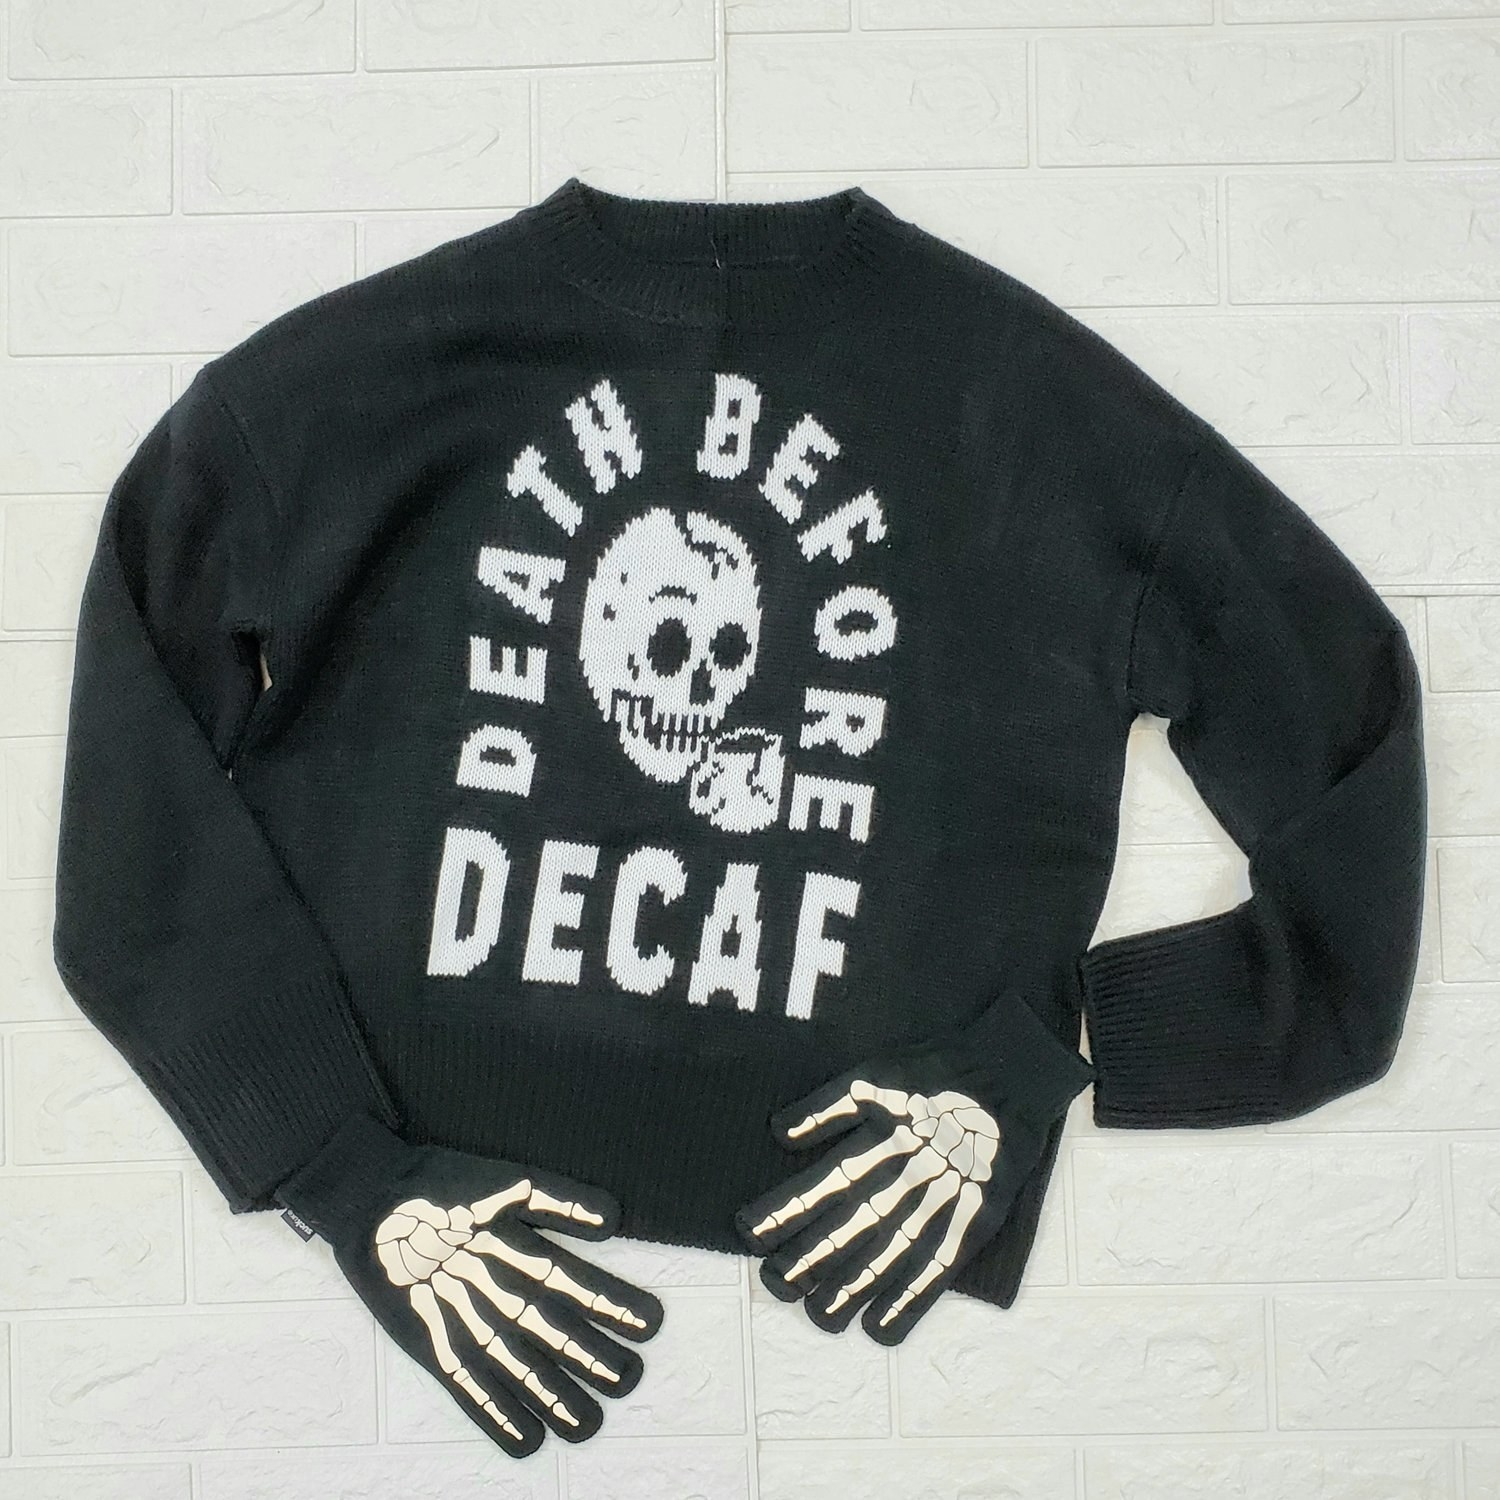 """sweater that says """"death before decaf"""" with bone-like gloves paired with it"""